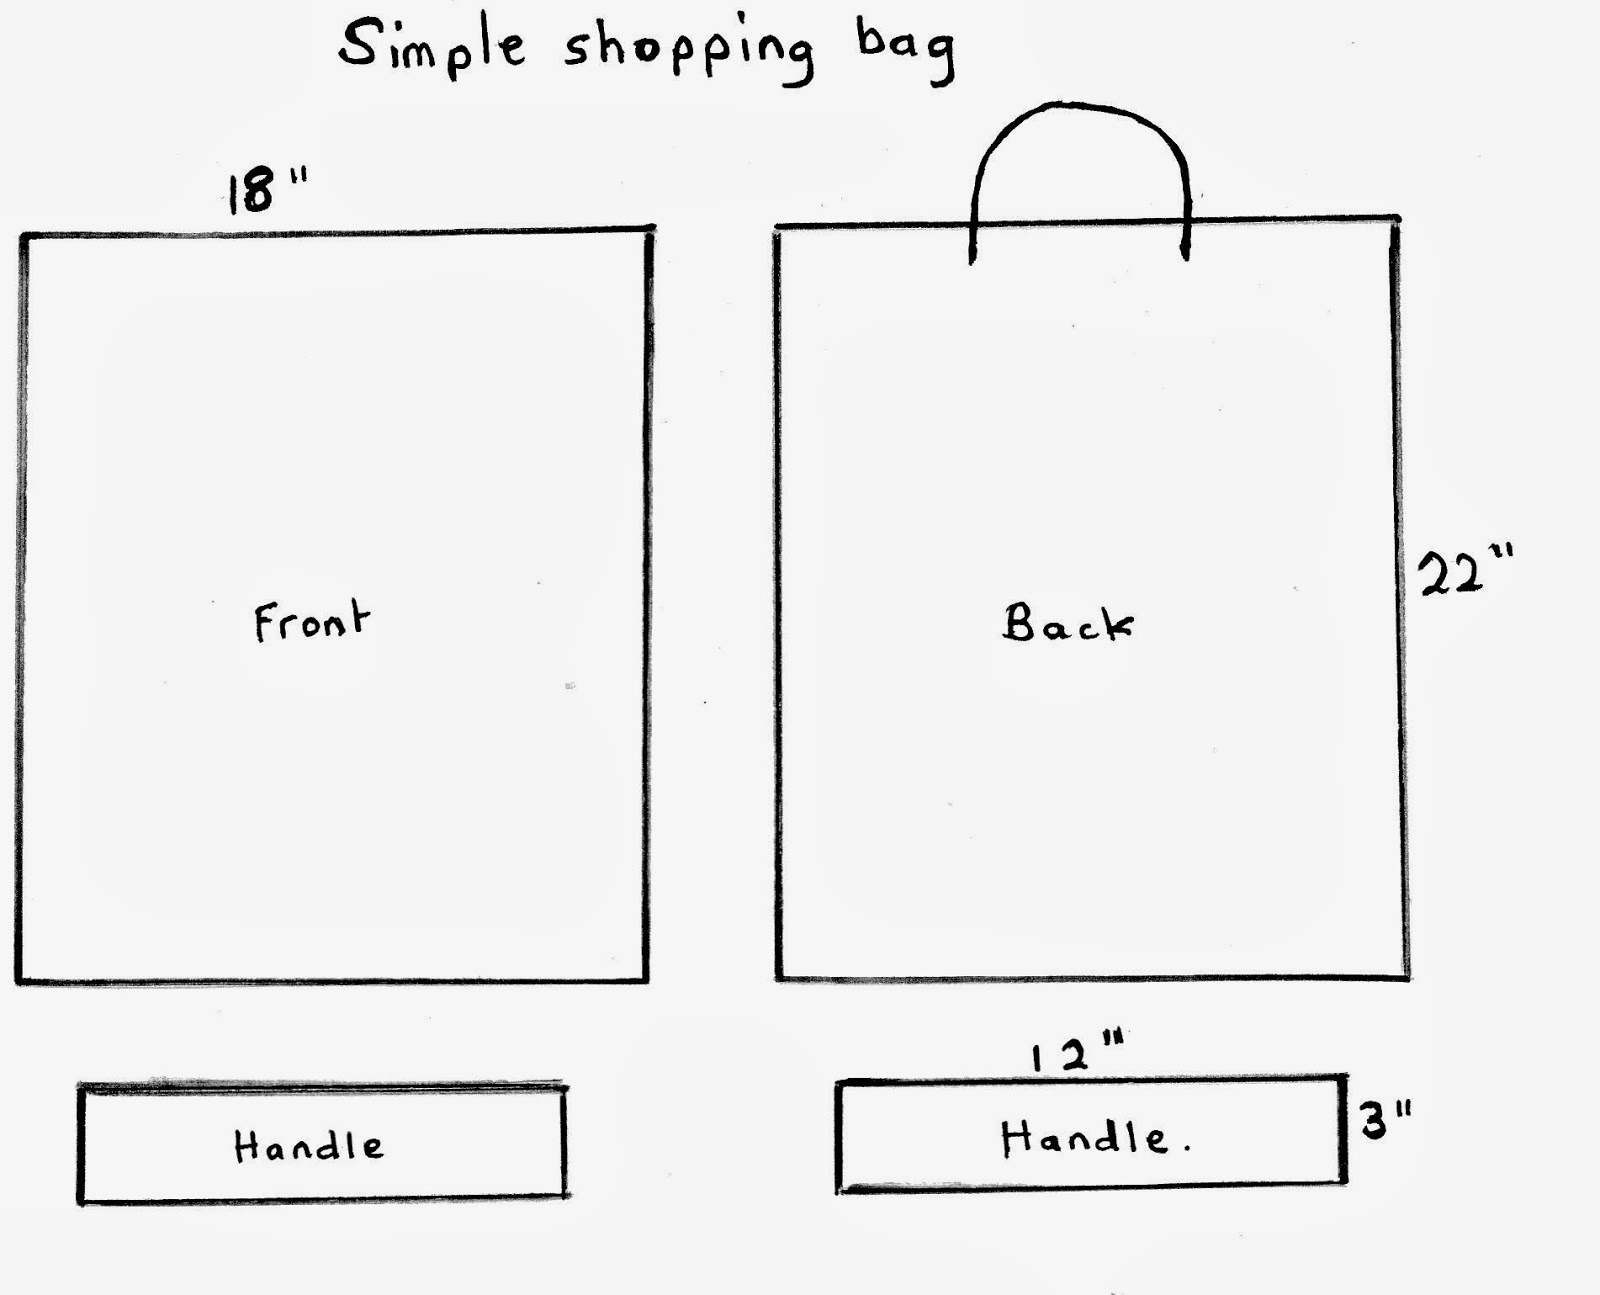 Life After Money Make Your Own Shopping Bag